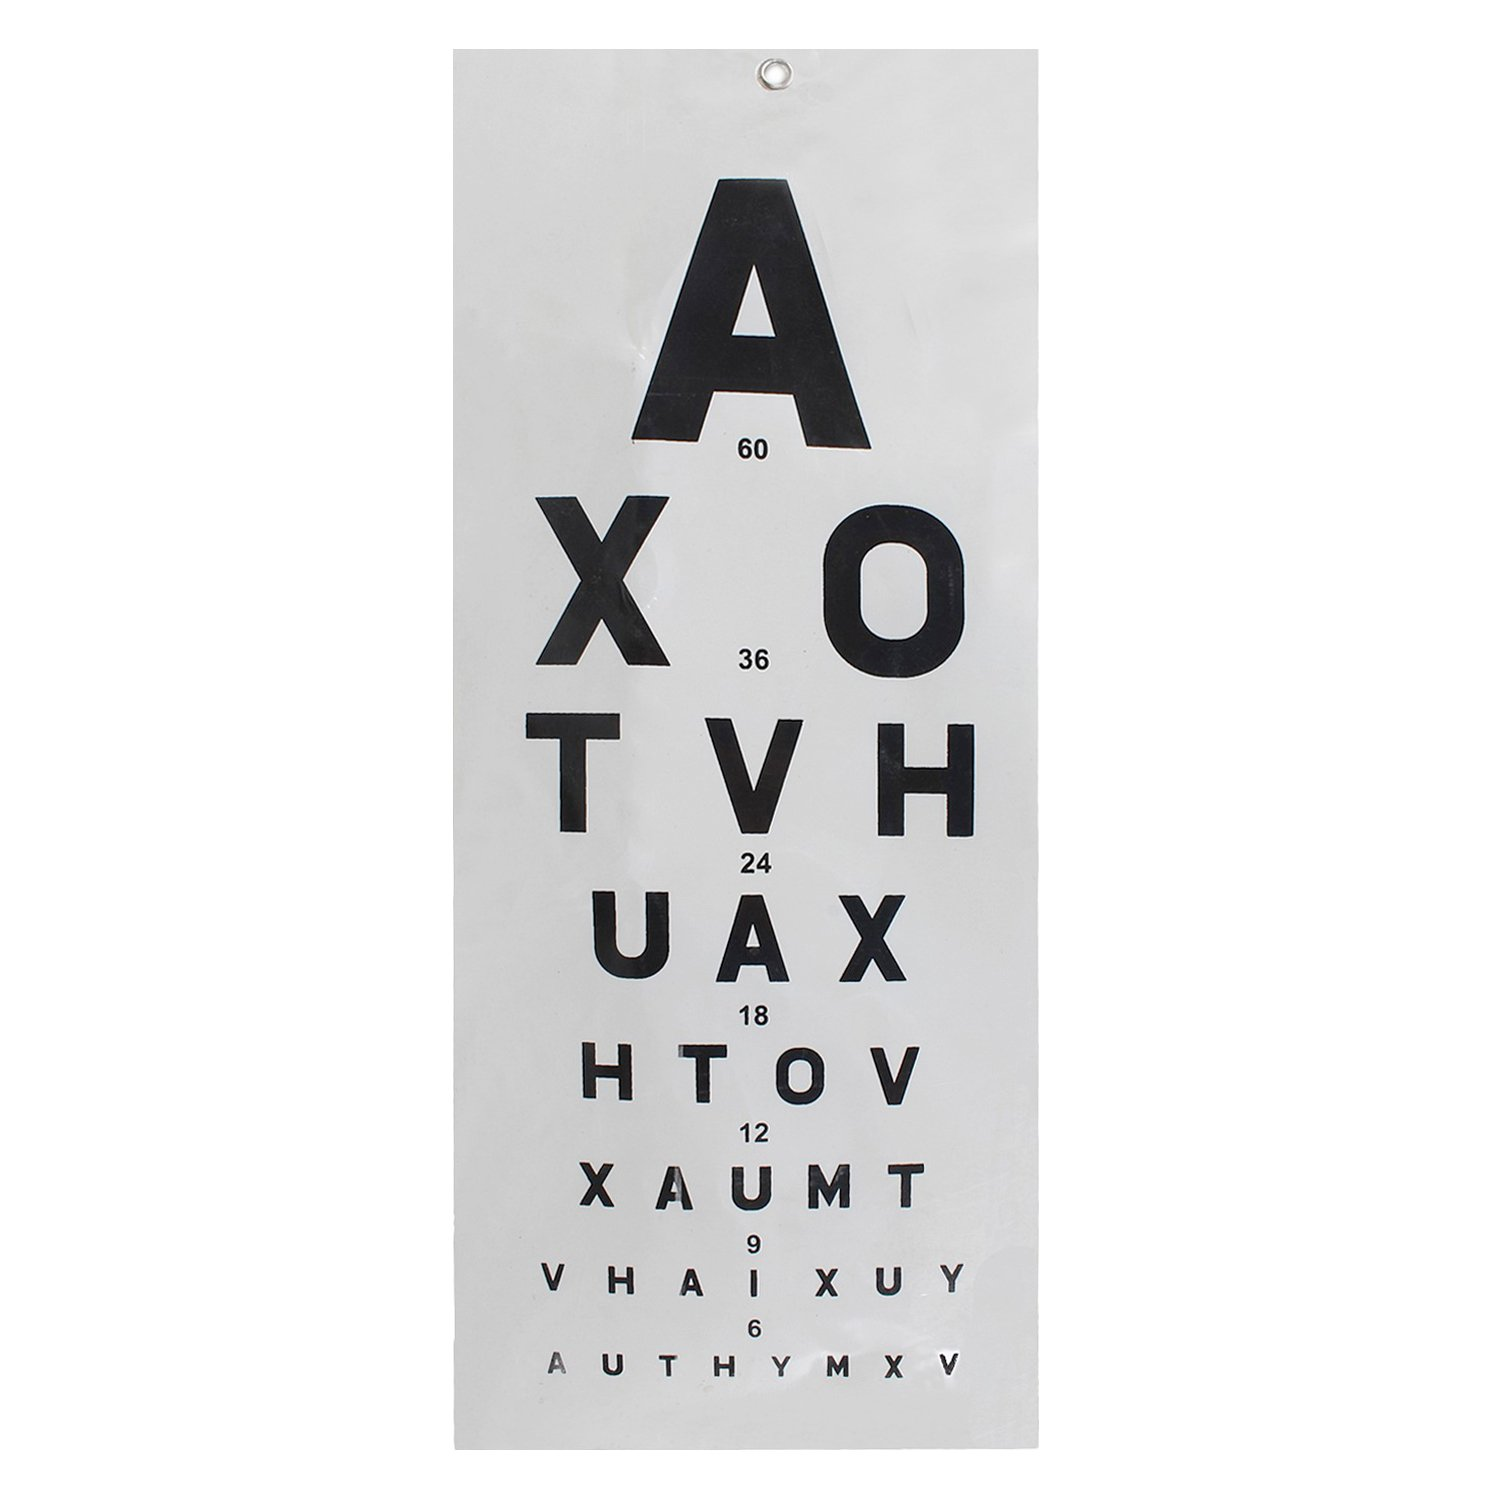 Mcp eye vision chart amazon health personal care nvjuhfo Image collections